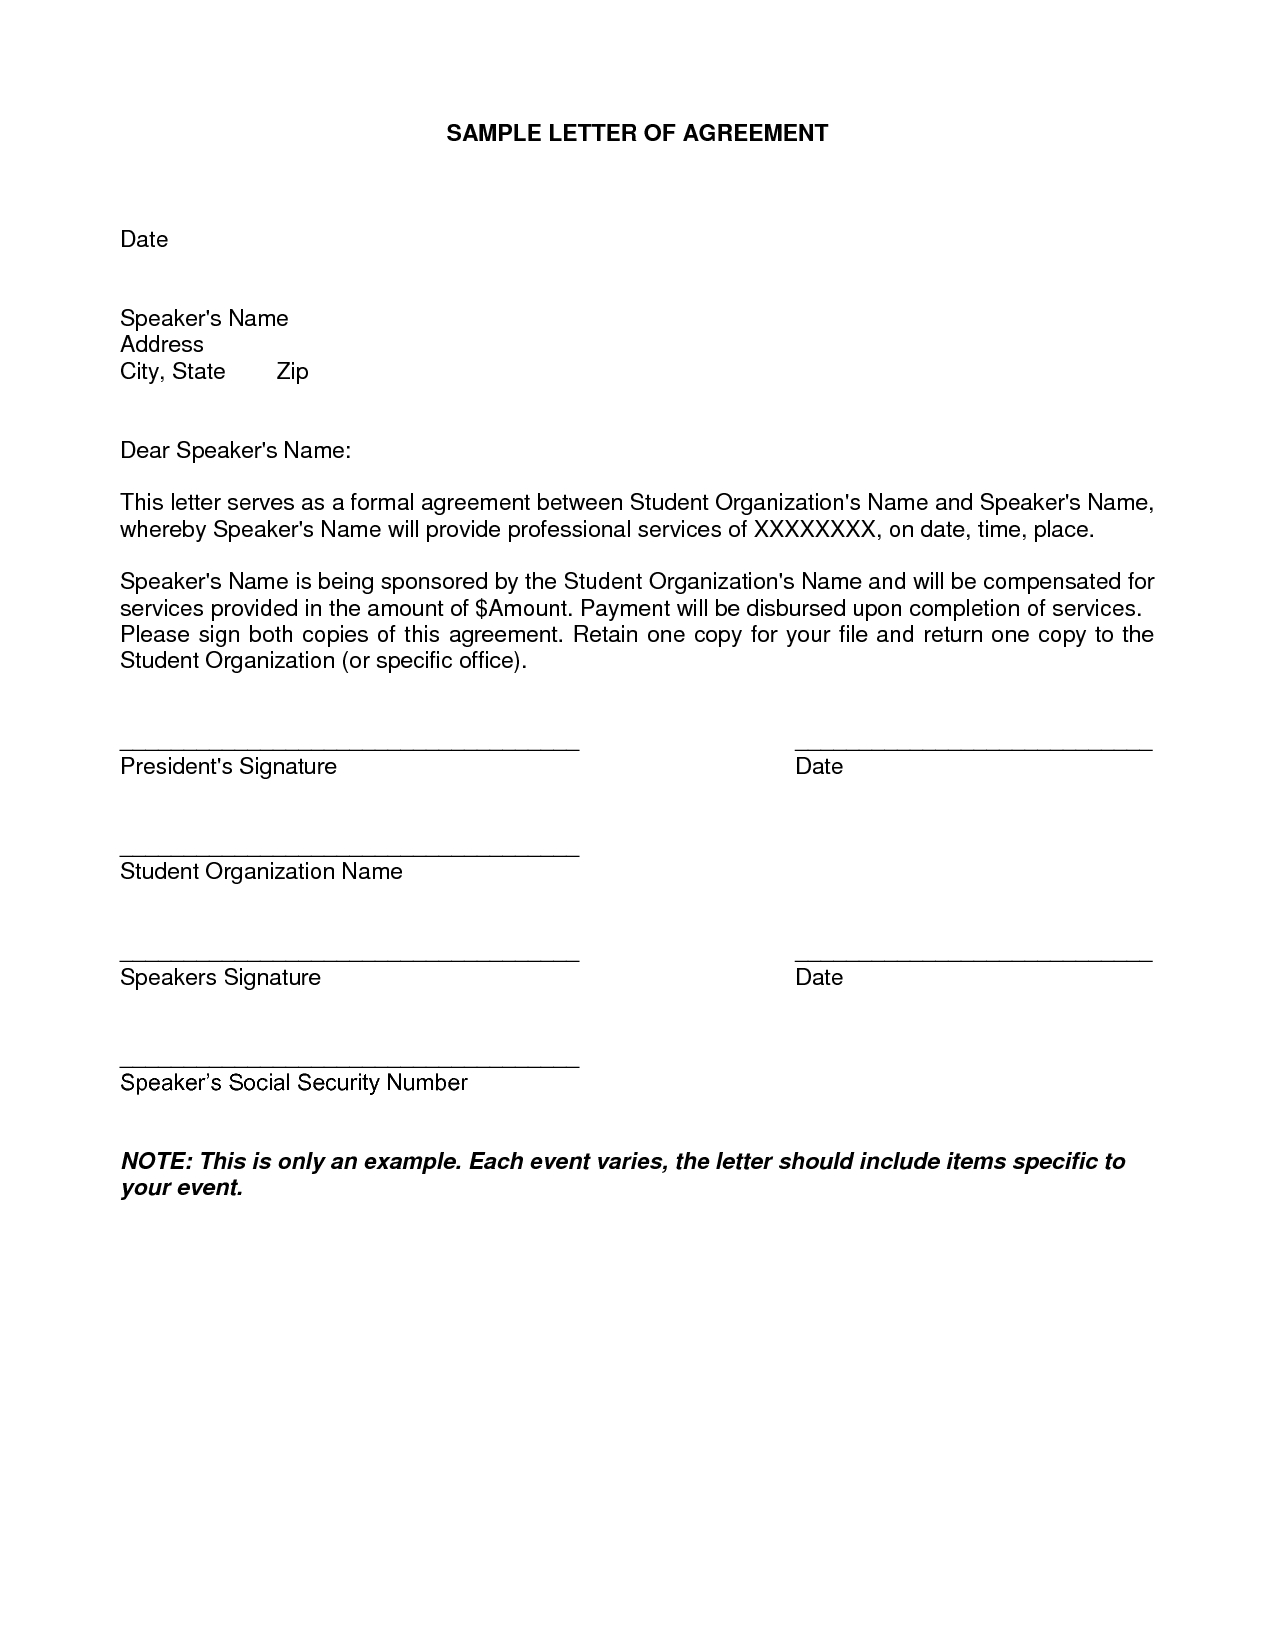 Settlement Agreement Letter Template - Letter Agreement Samples Template Seeabruzzo Letter Of